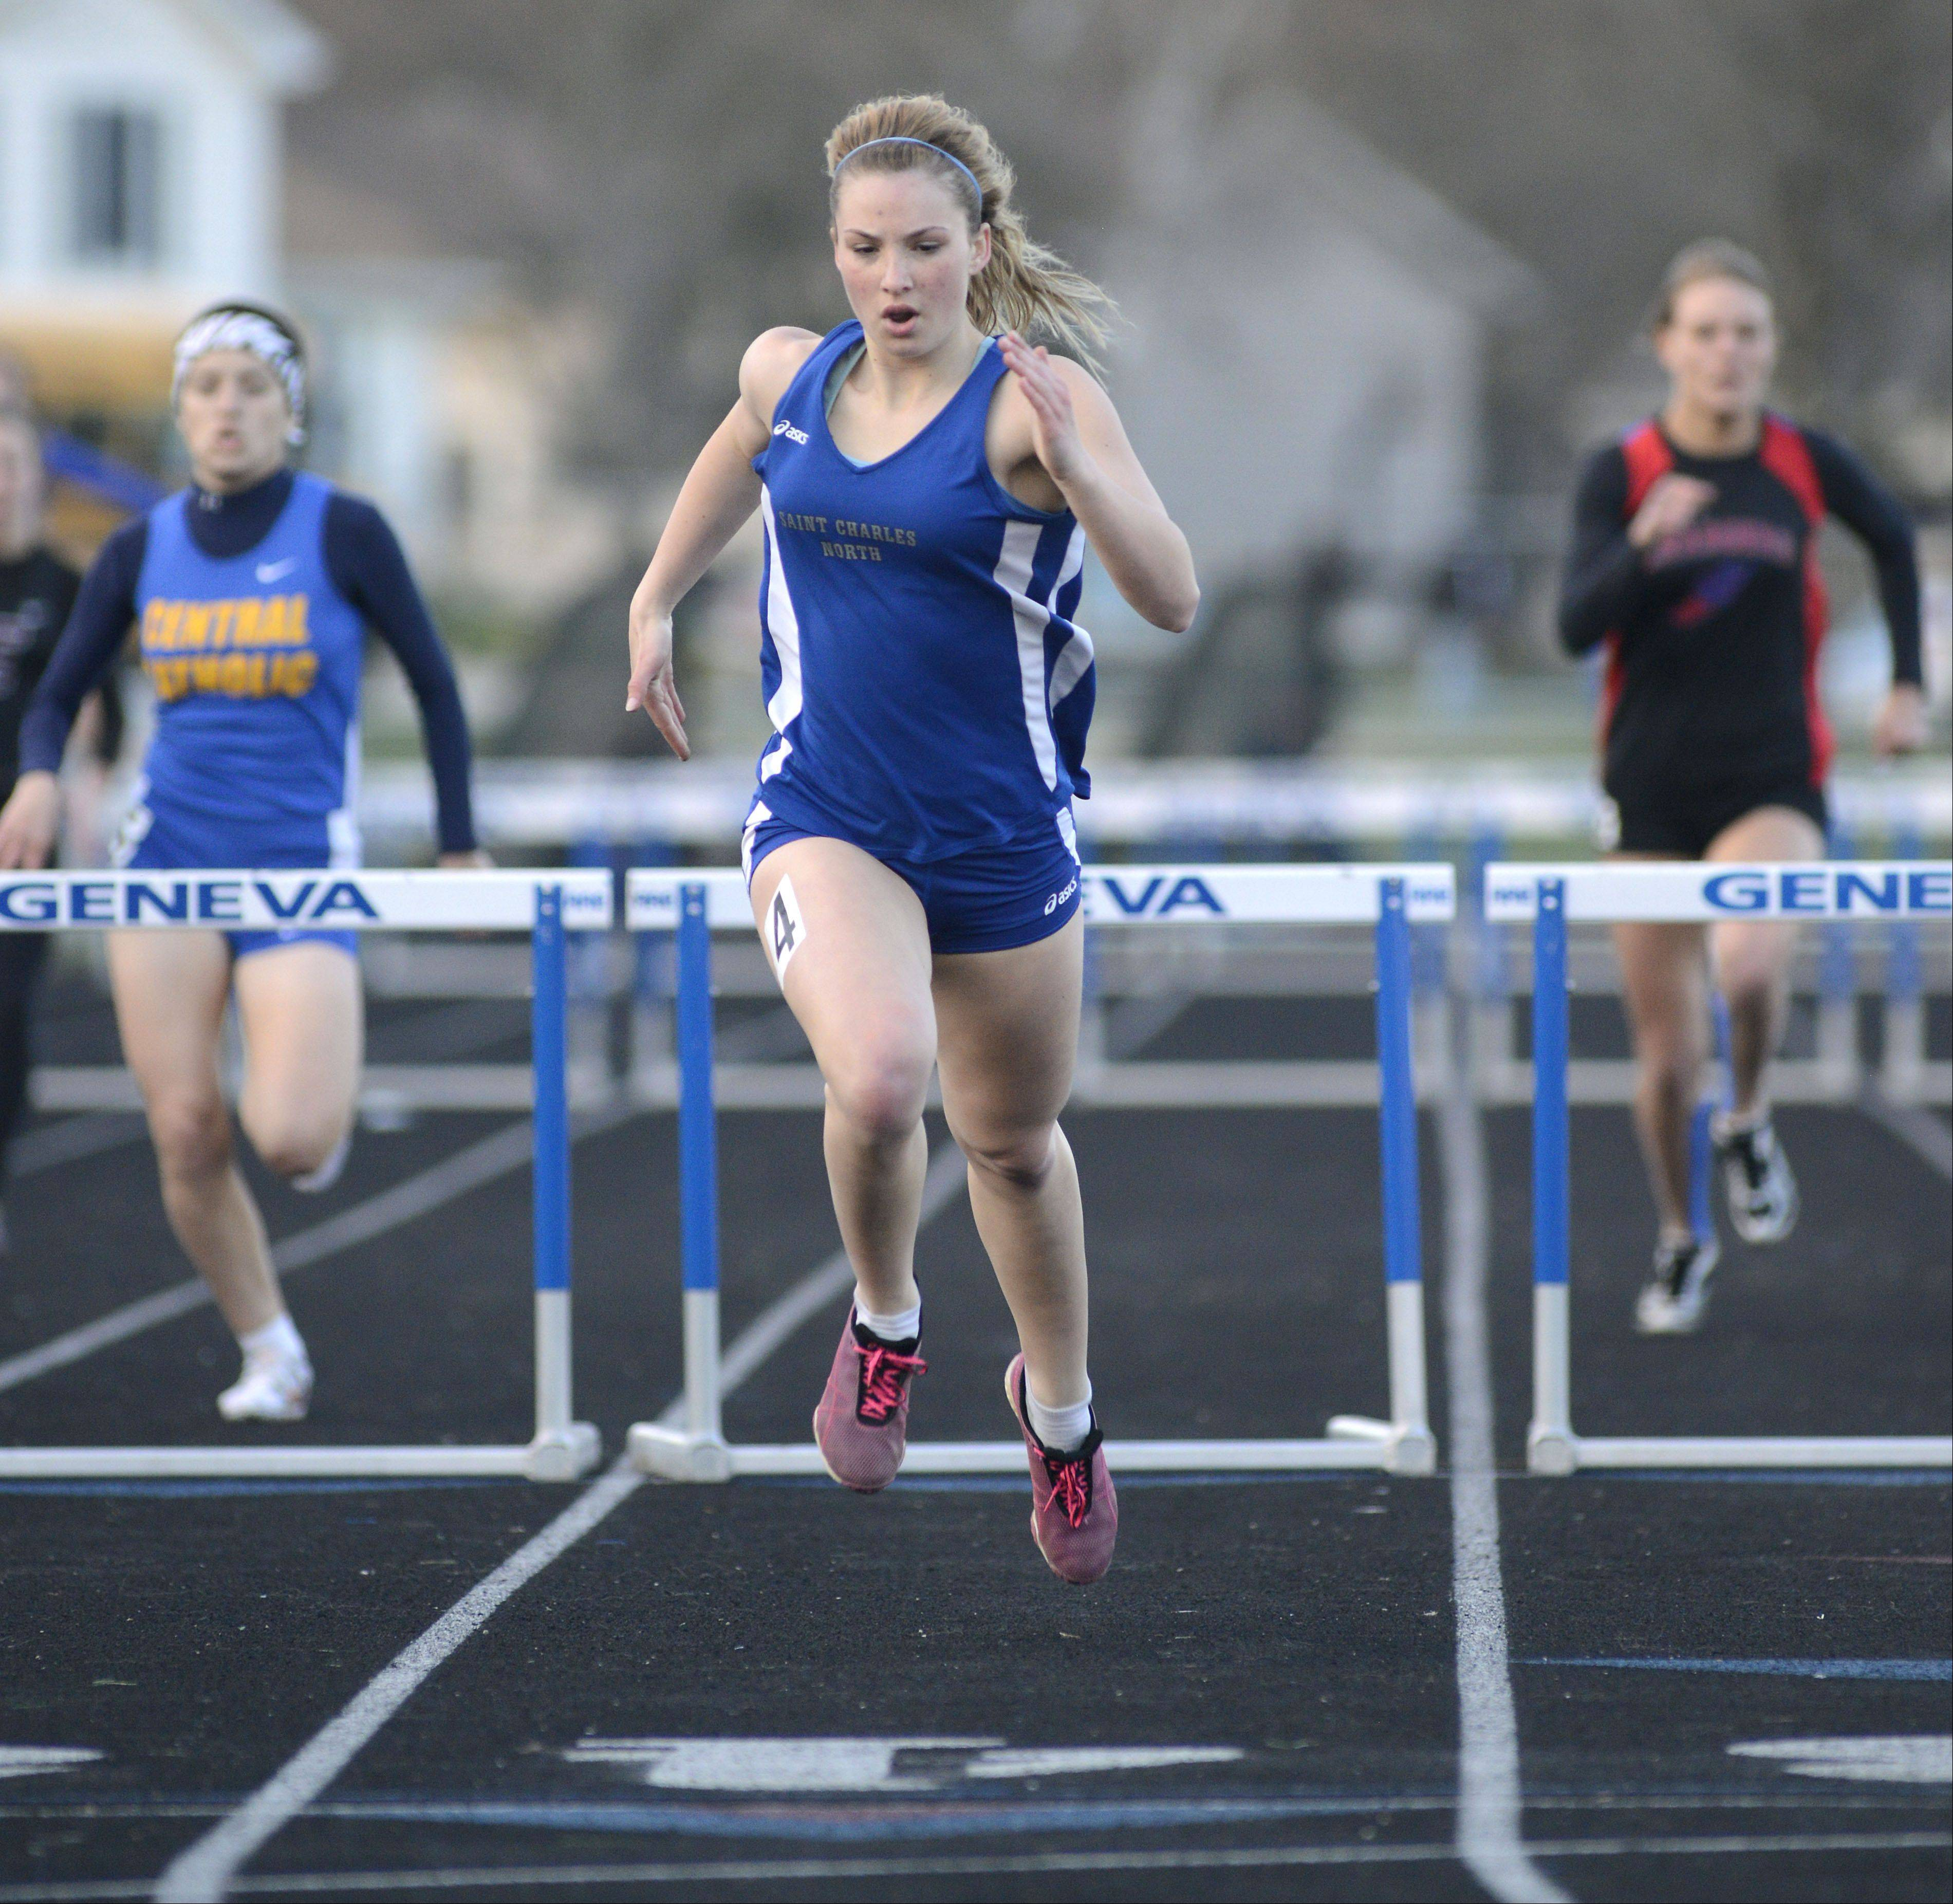 St. Charles North's Alexa Prejna wins the second heat of the 300 meter hurdles at the Kane County Invitational track in Geneva meet on Friday, April 26.